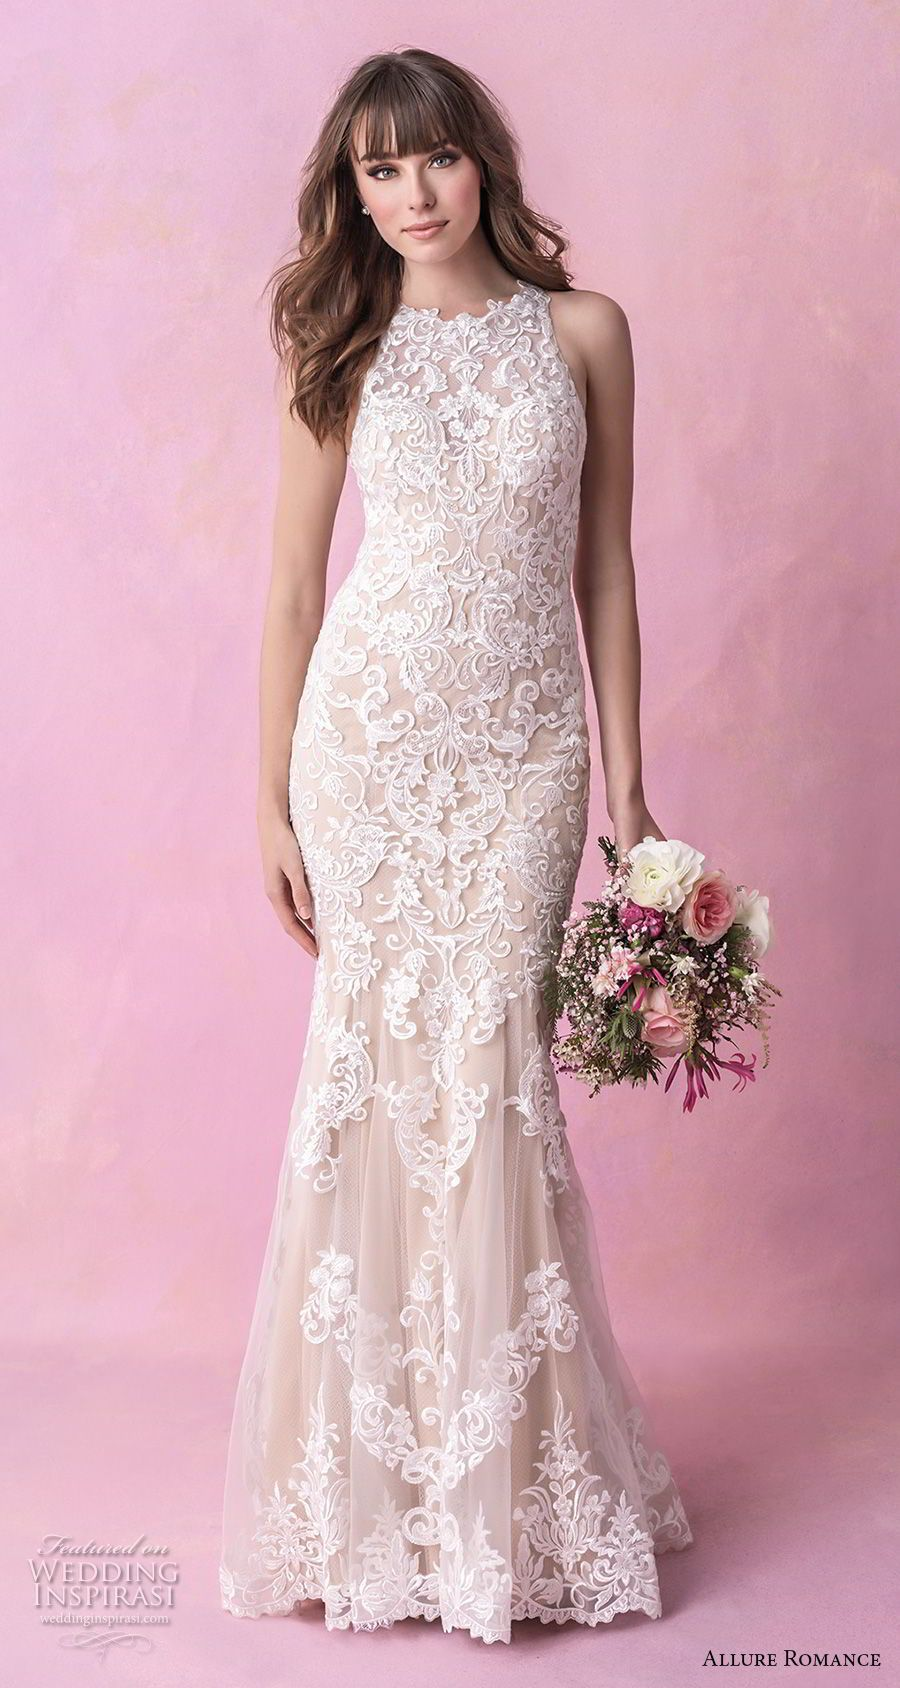 Allure Romance Fall 2018 Wedding Dresses | Vestidos de novia, Novios ...